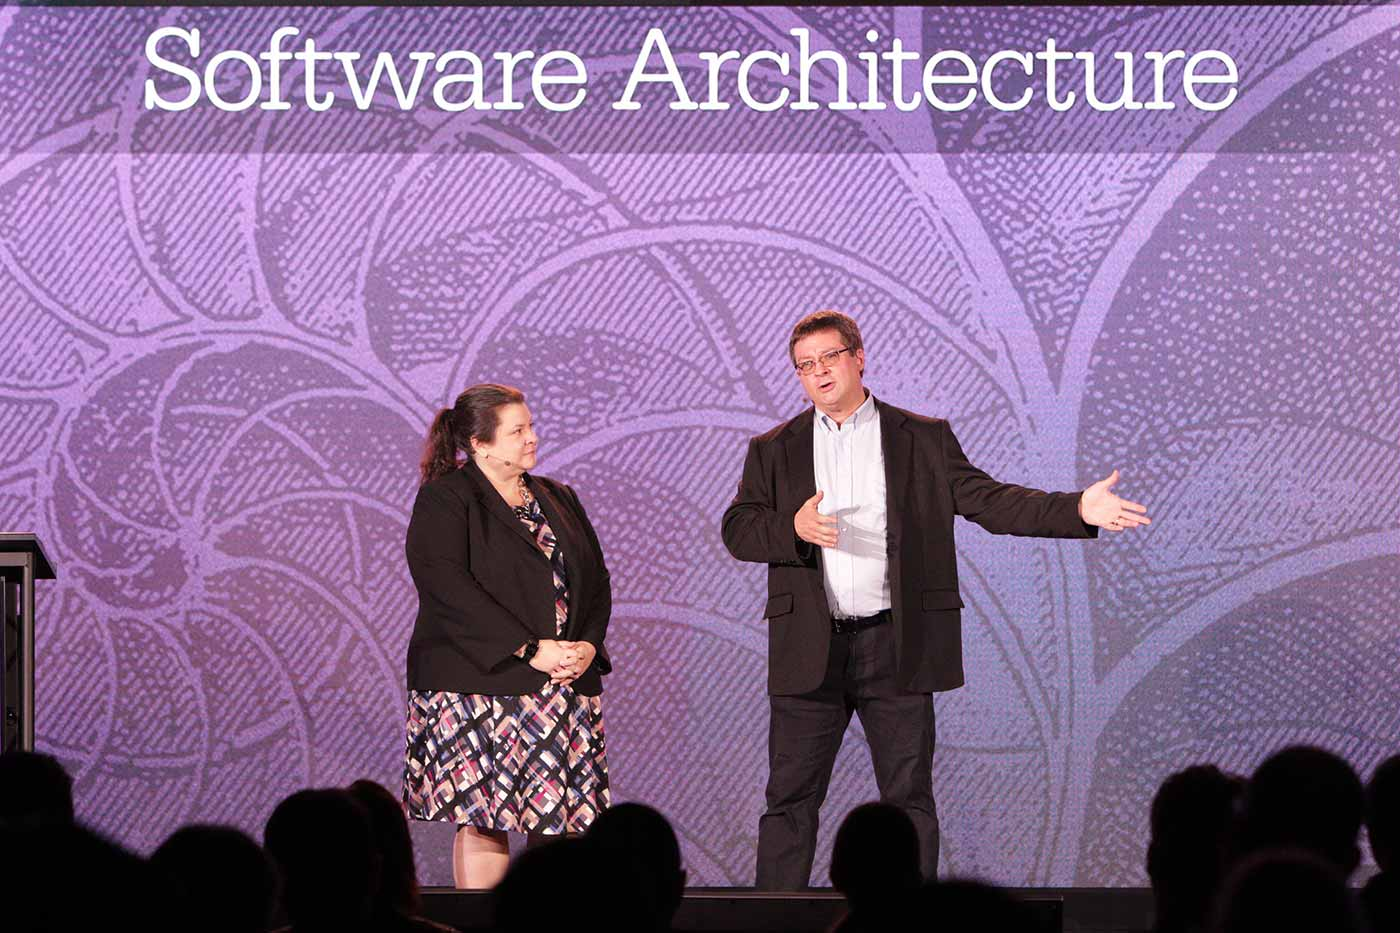 Rachel Roumeliotis (left) and Neal Ford (right) at the O'Reilly Software Architecture Conference in San Francisco.